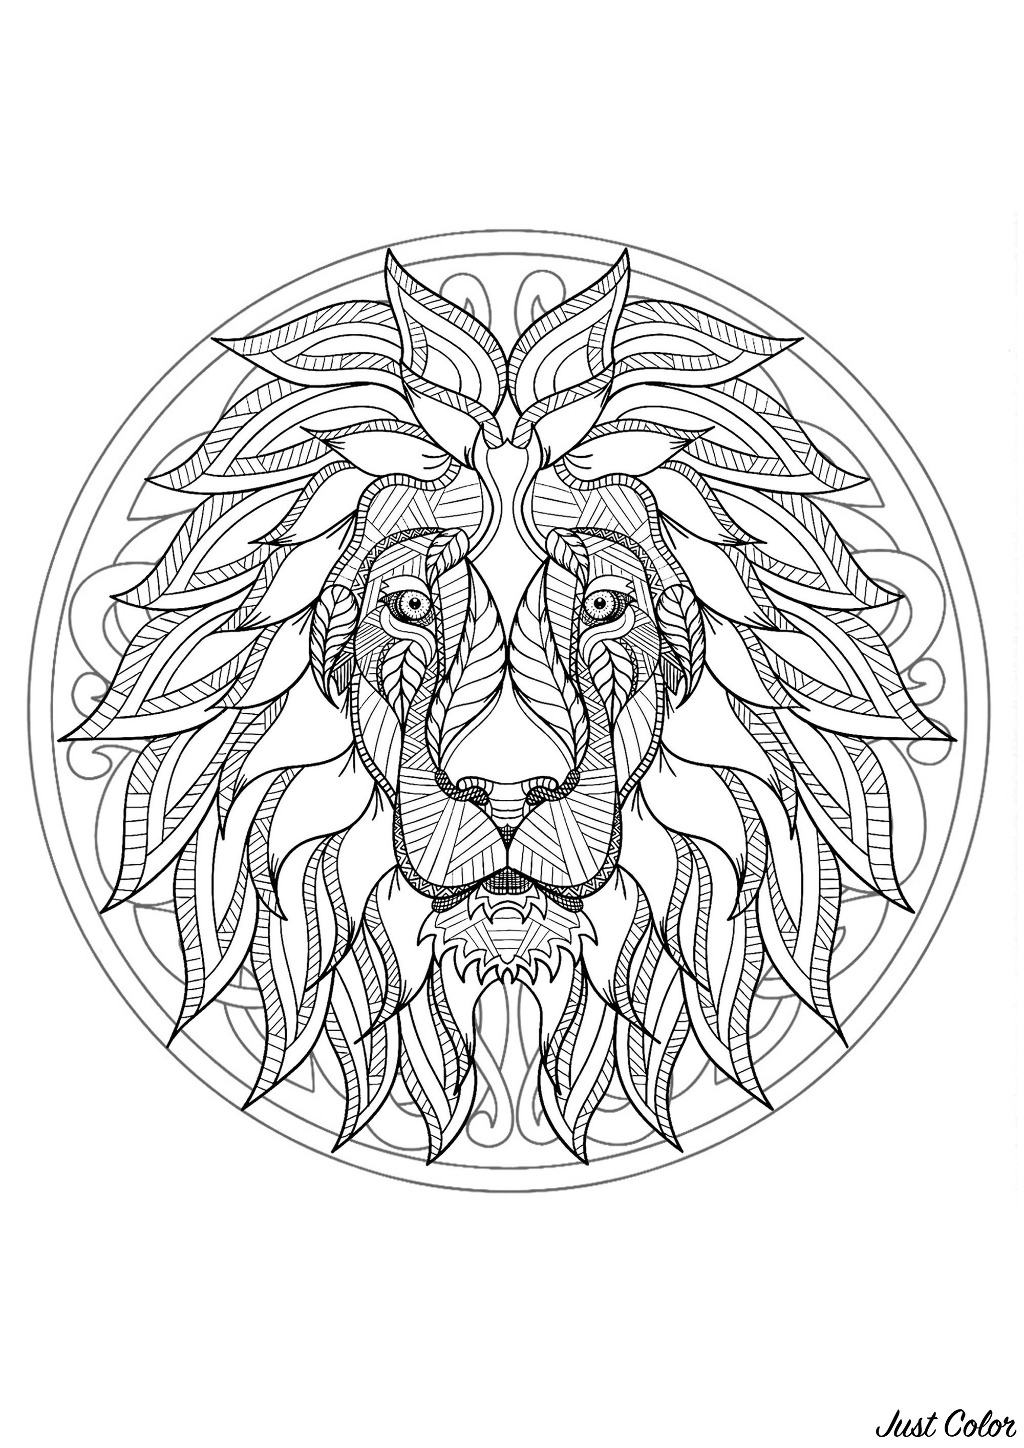 Prepare your best colors to give life to this majestic Lion. Don't hesitate to share the result with us by sending it !